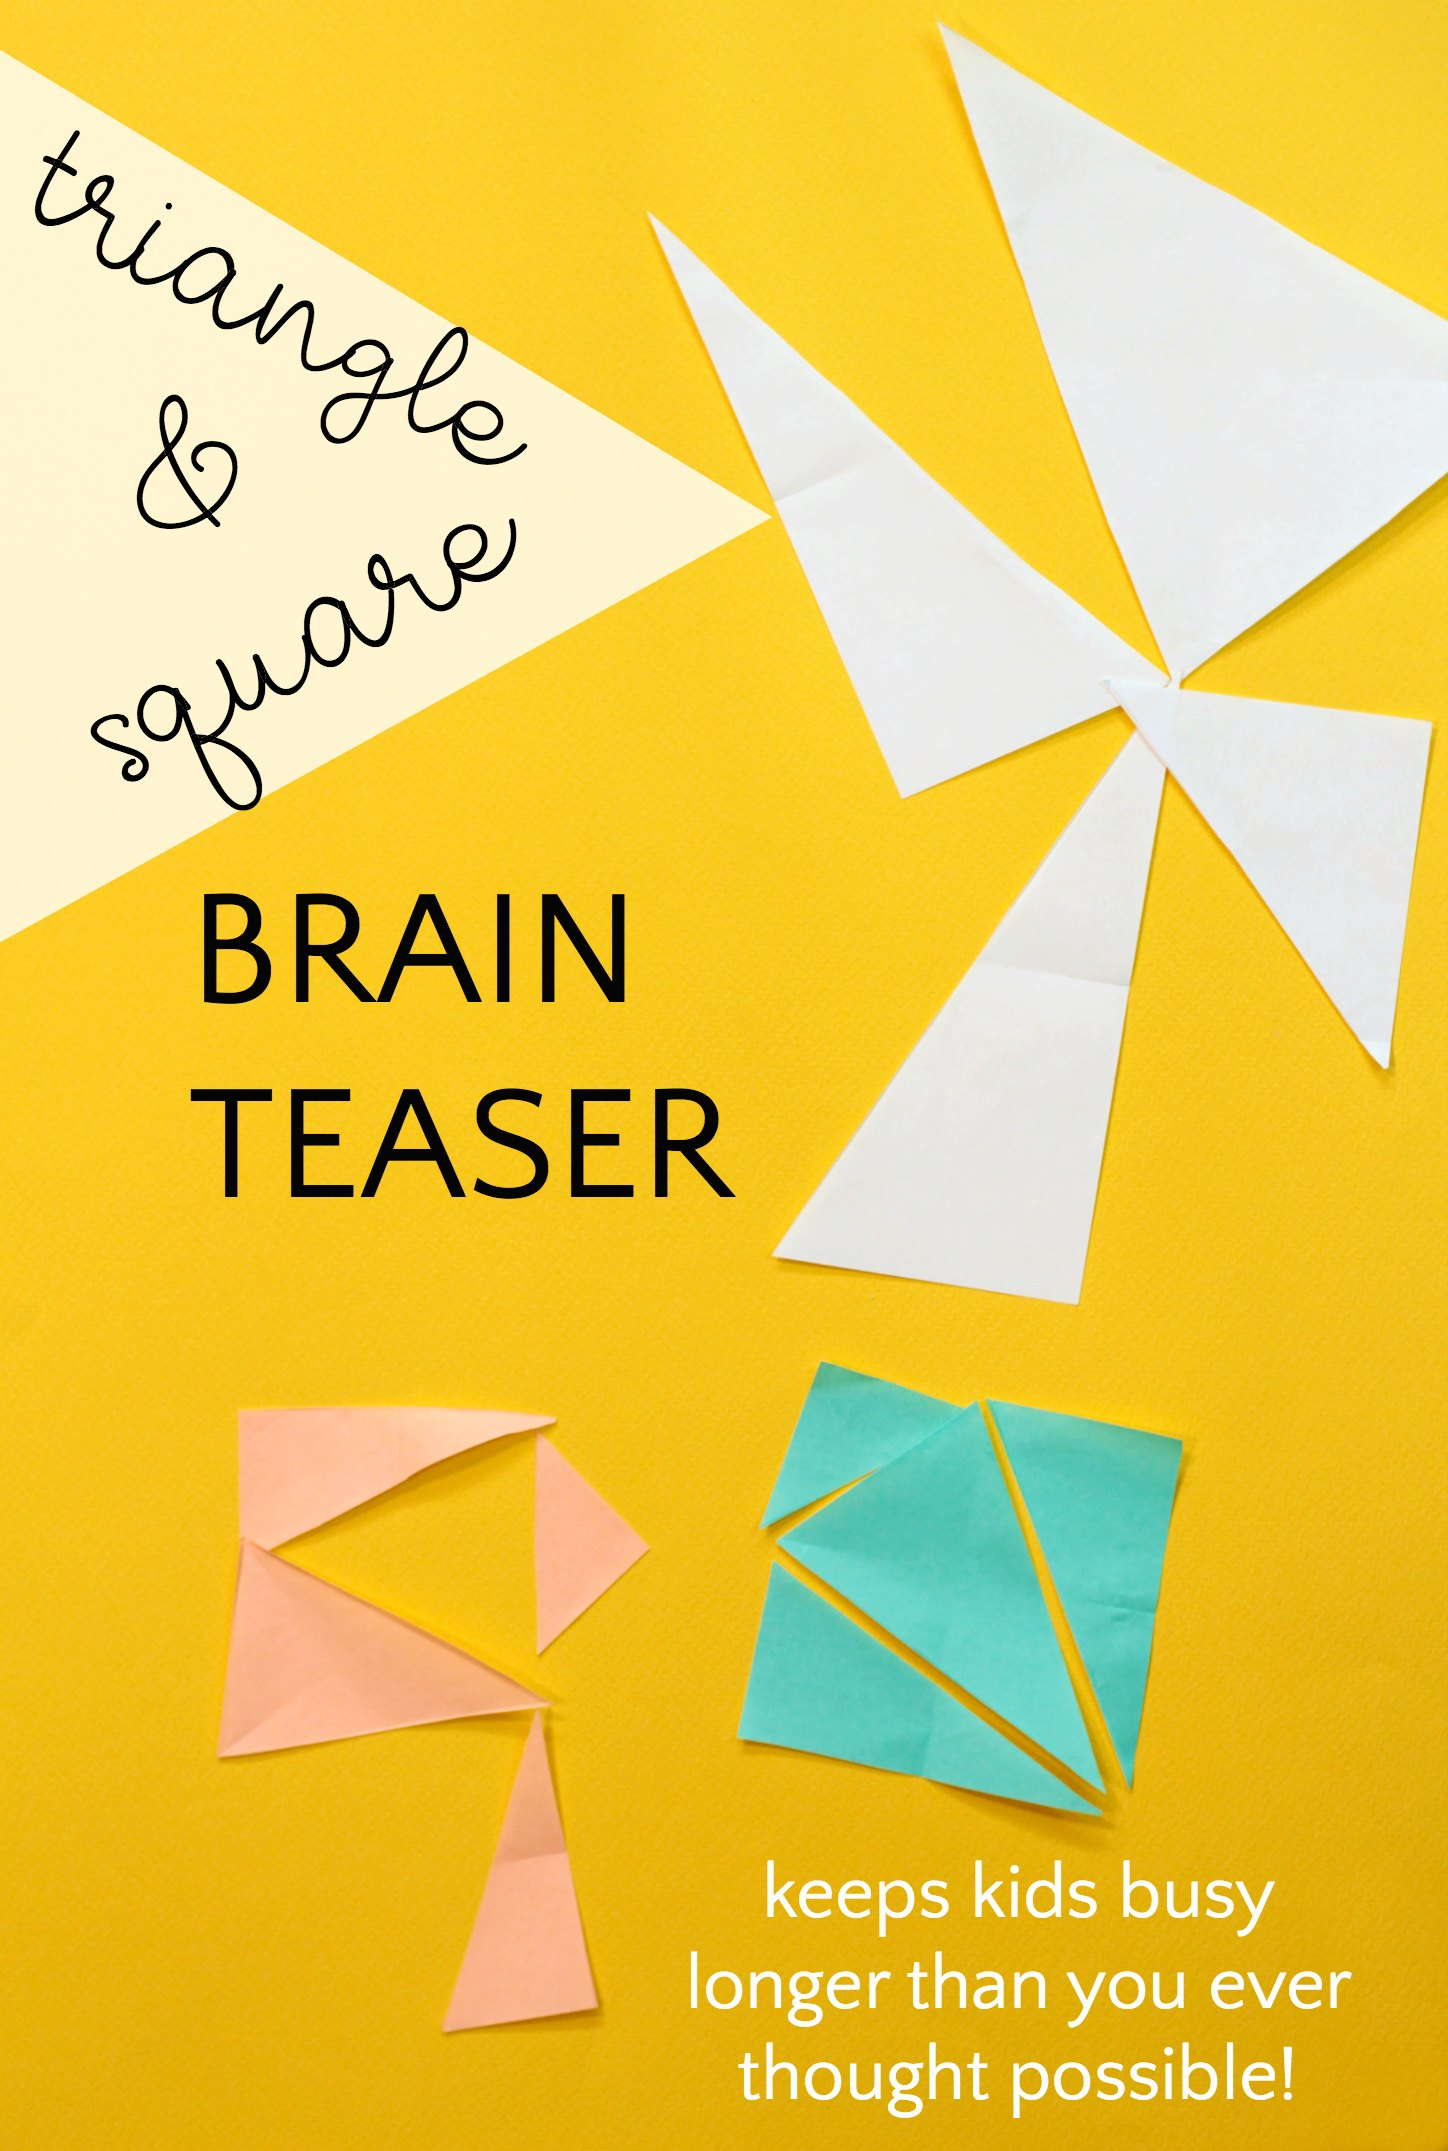 Triangle brain teaser made out of paper